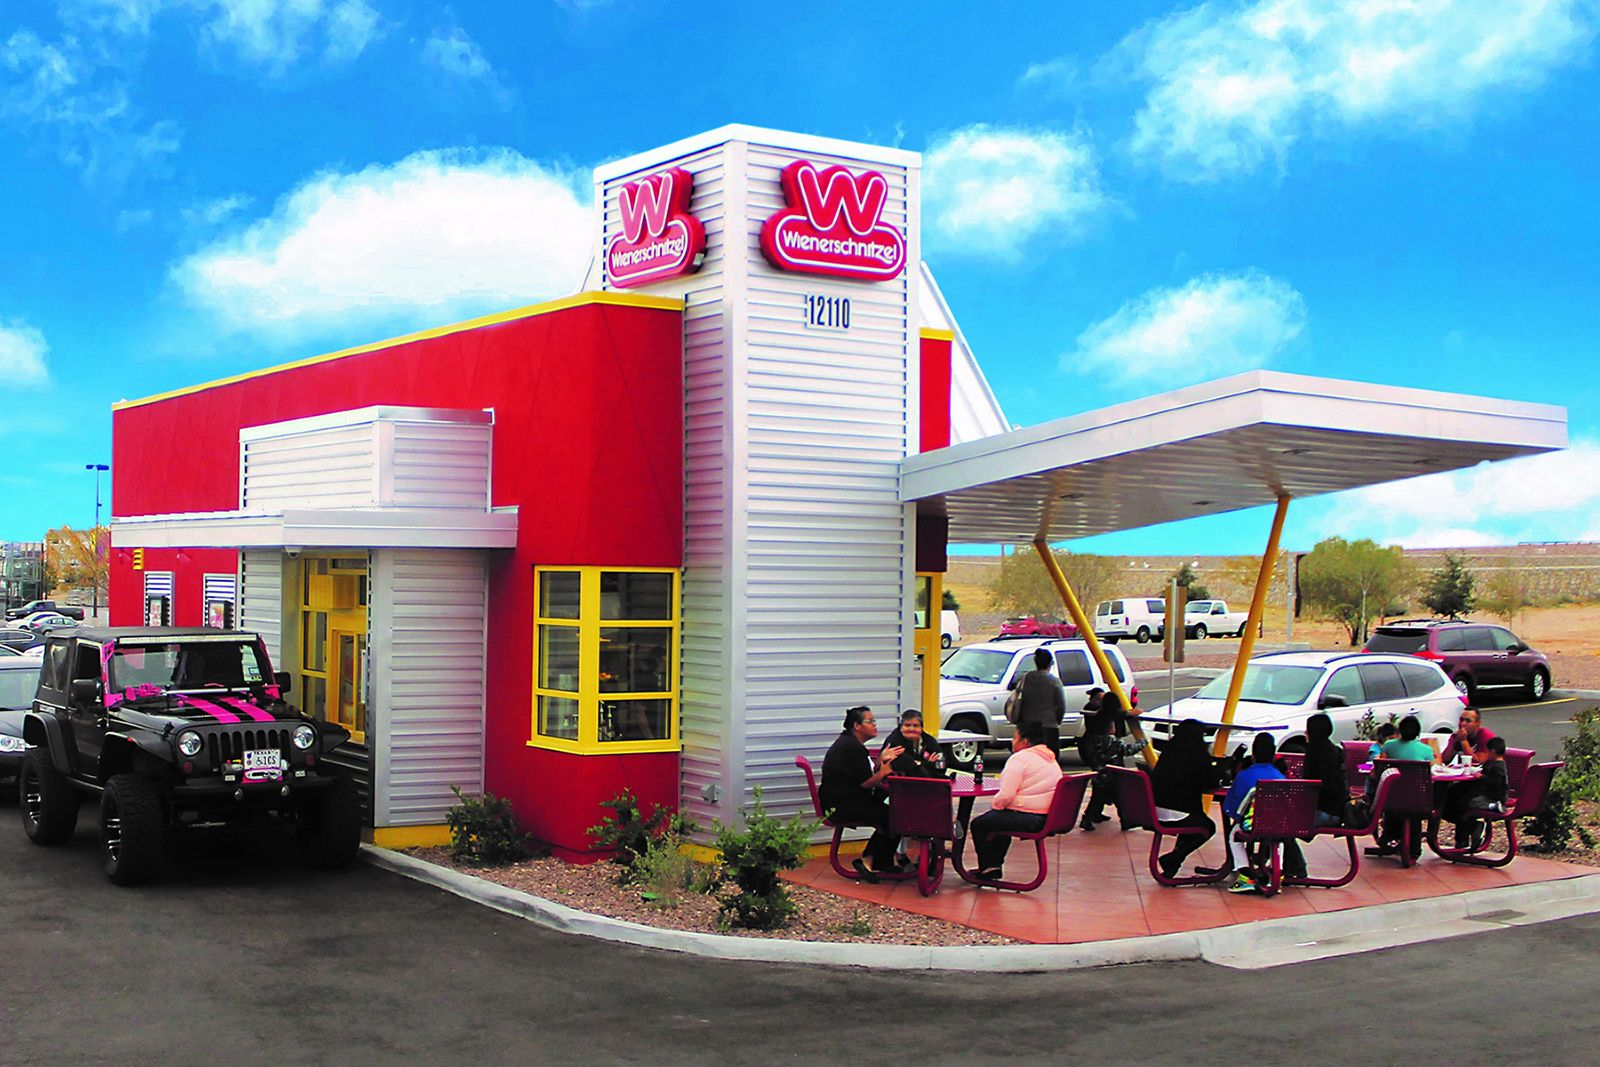 On the heels of record-breaking same-store sales in 2021 and Q1 2021, Wienerschnitzel sets sights on Midwest expansion.